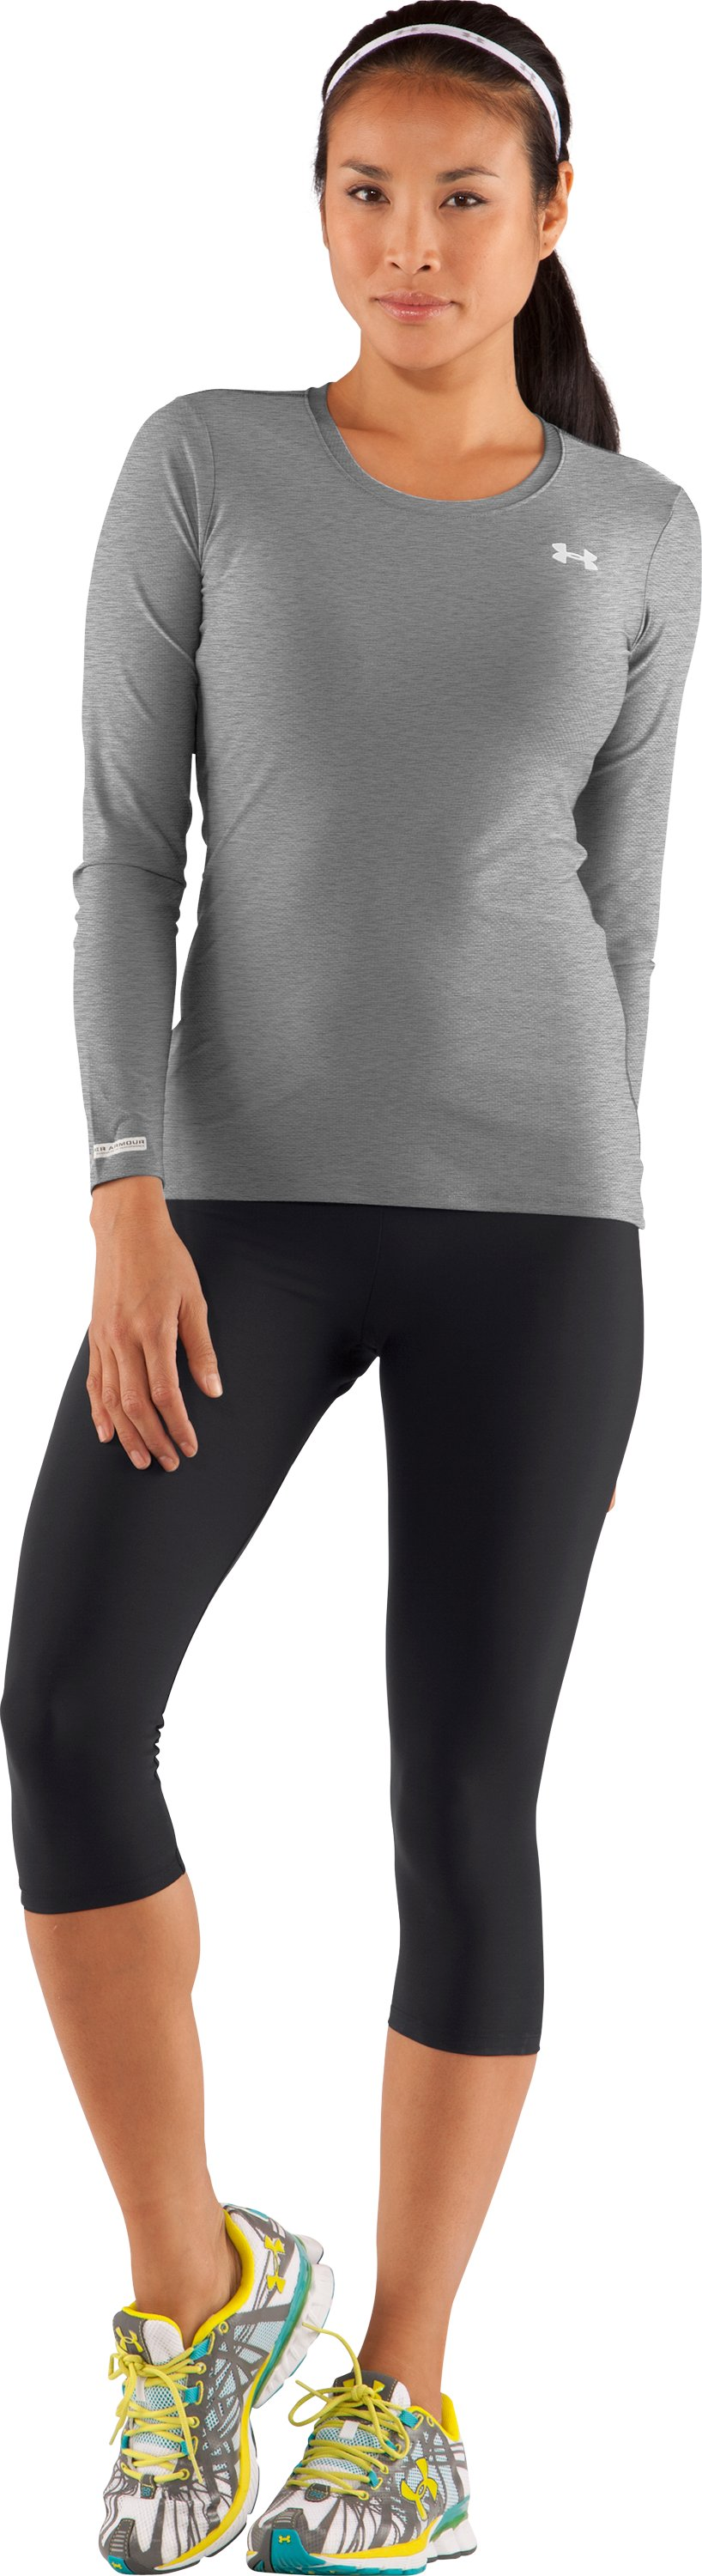 Women's UA HeatGear® Fitted Long Sleeve Shirt, True Gray Heather